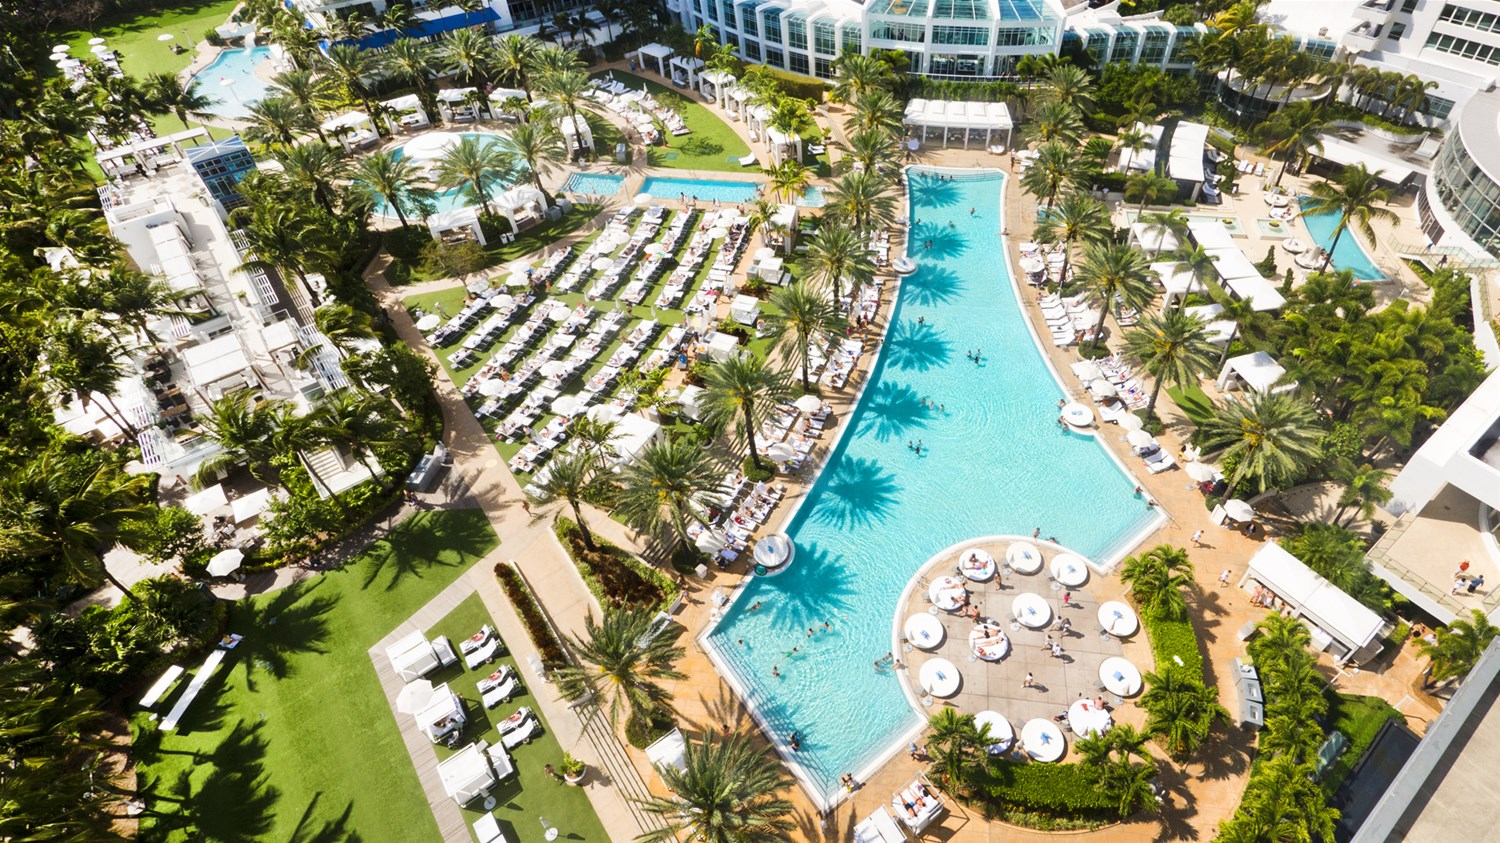 Miami Airport To Fontainebleau Hotel